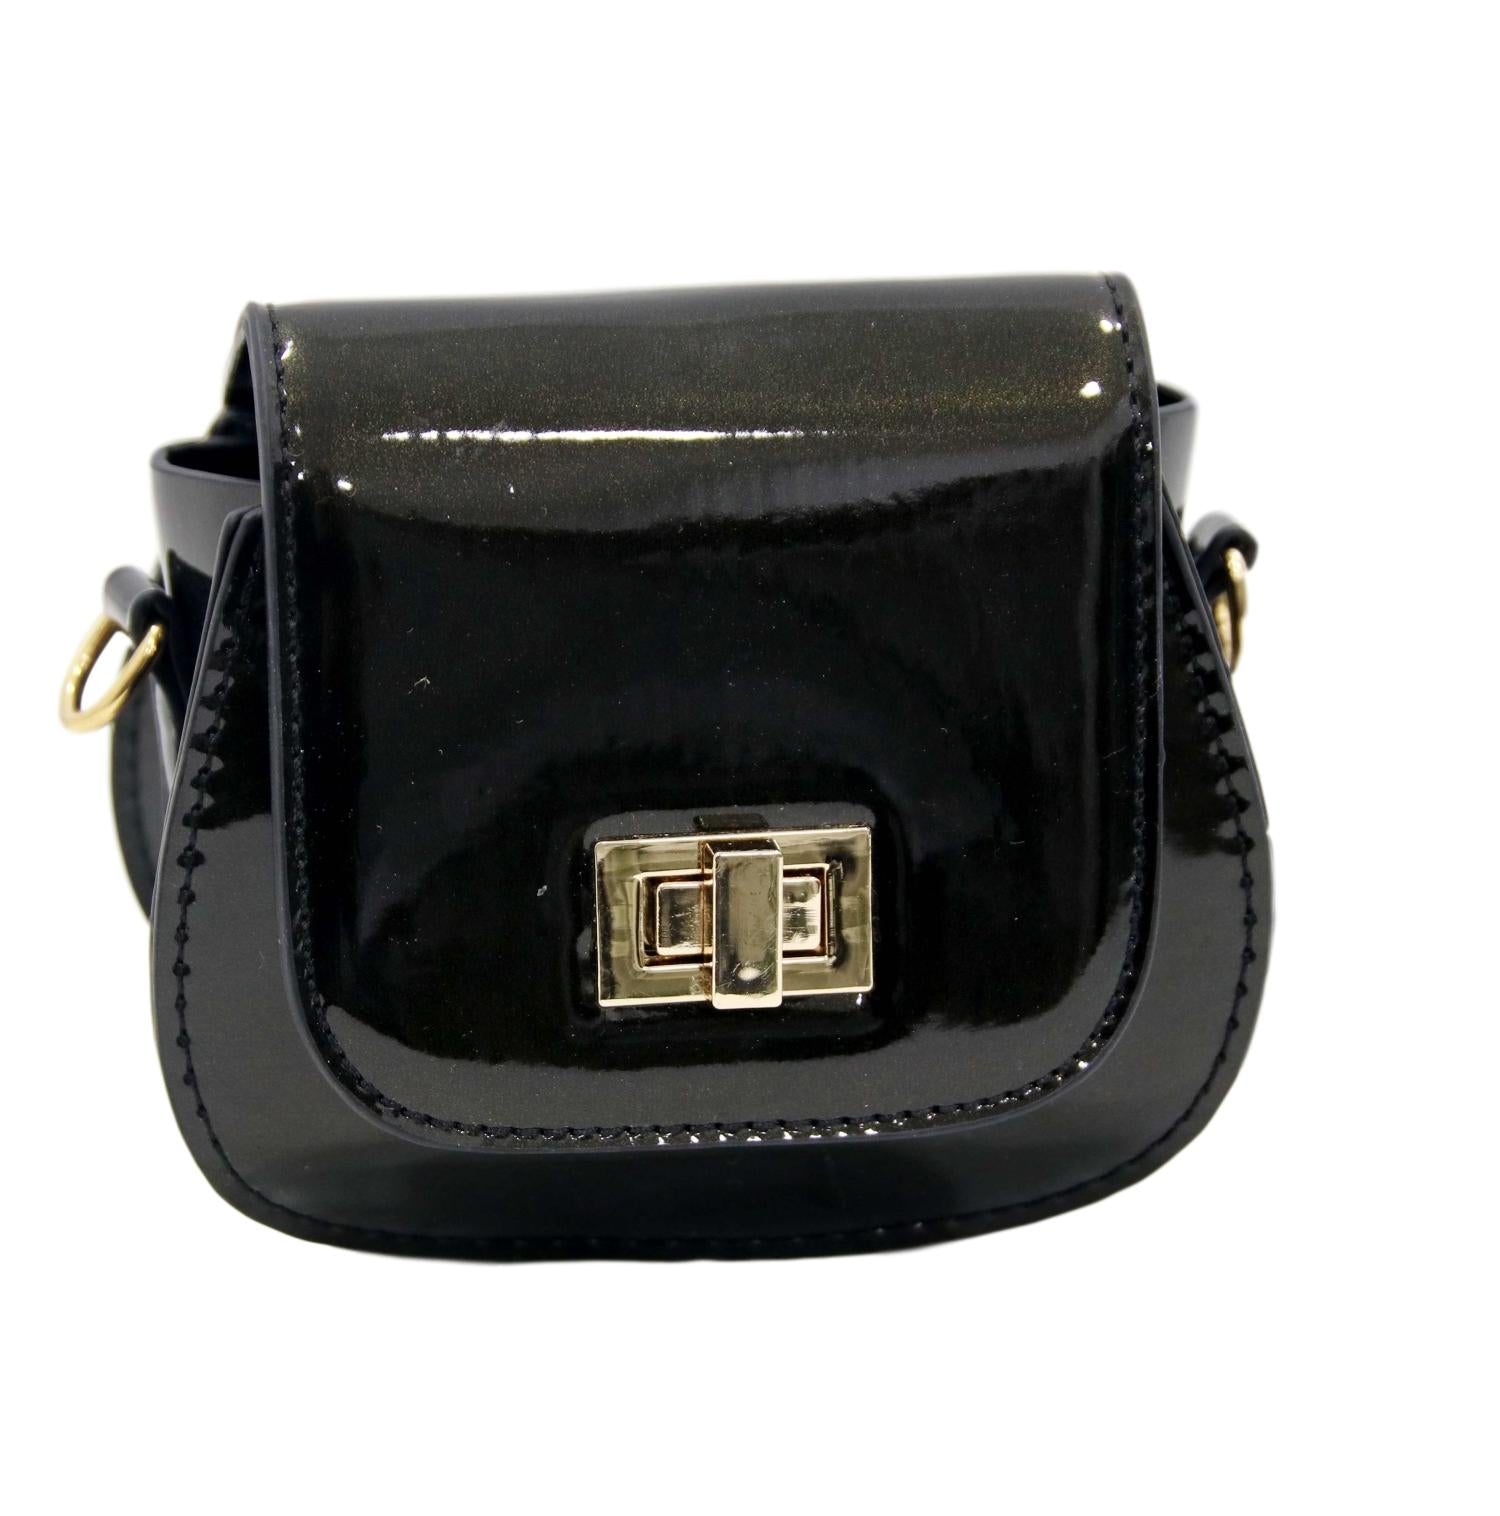 Black Patent Mini Bag